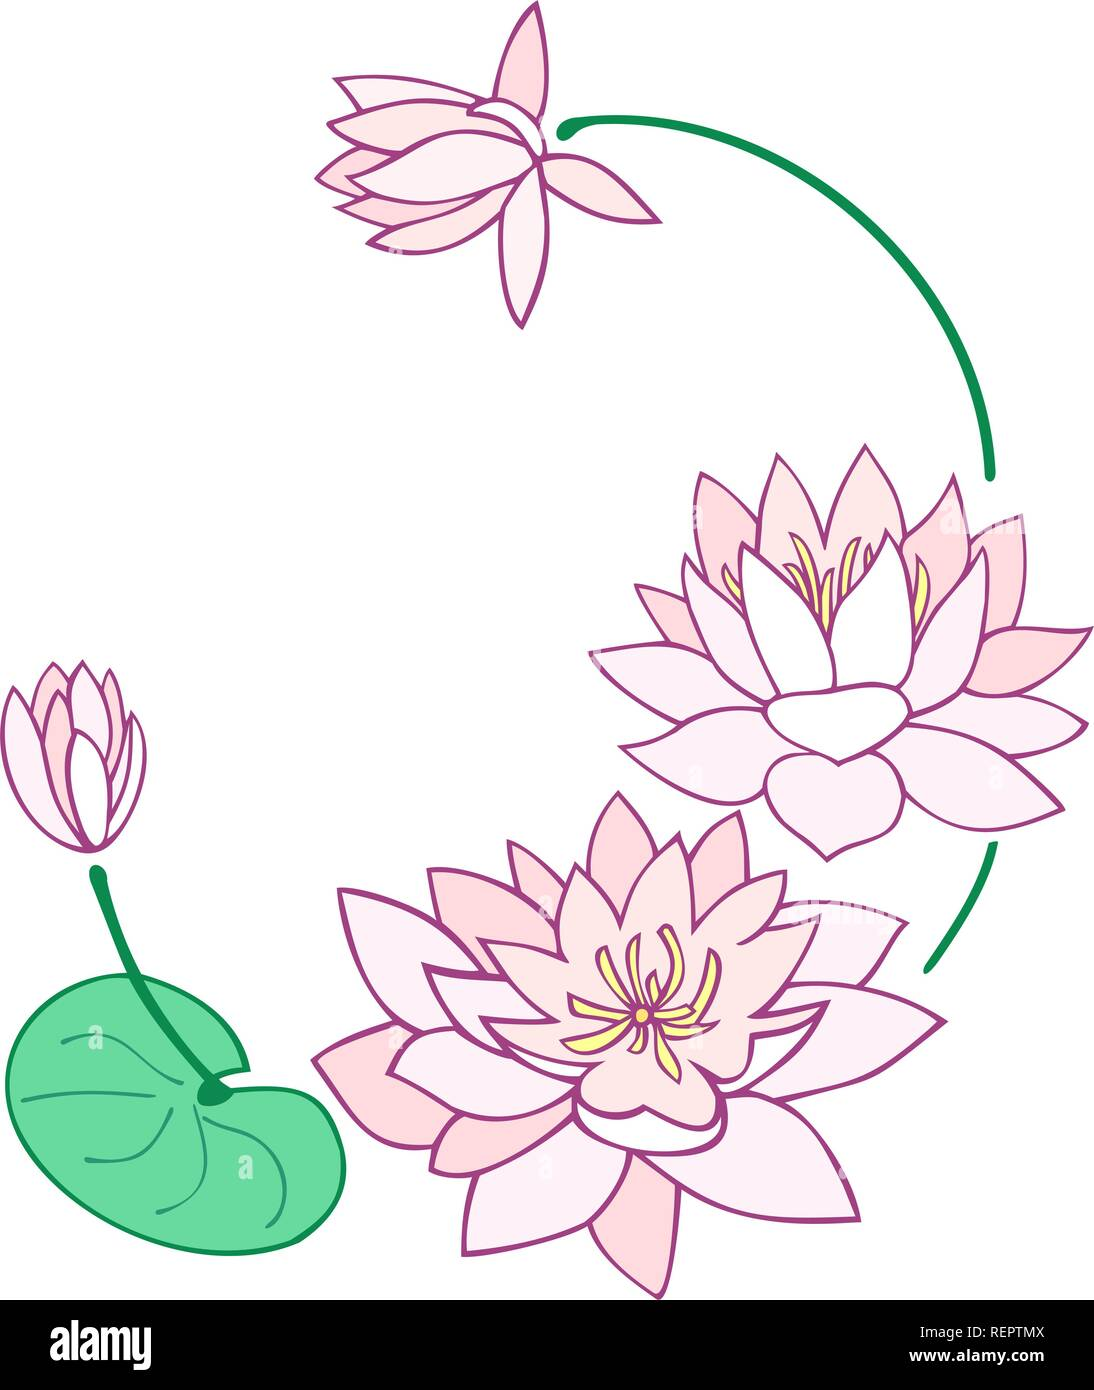 Water Lily Flowers Border Design Stock Vector Art Illustration